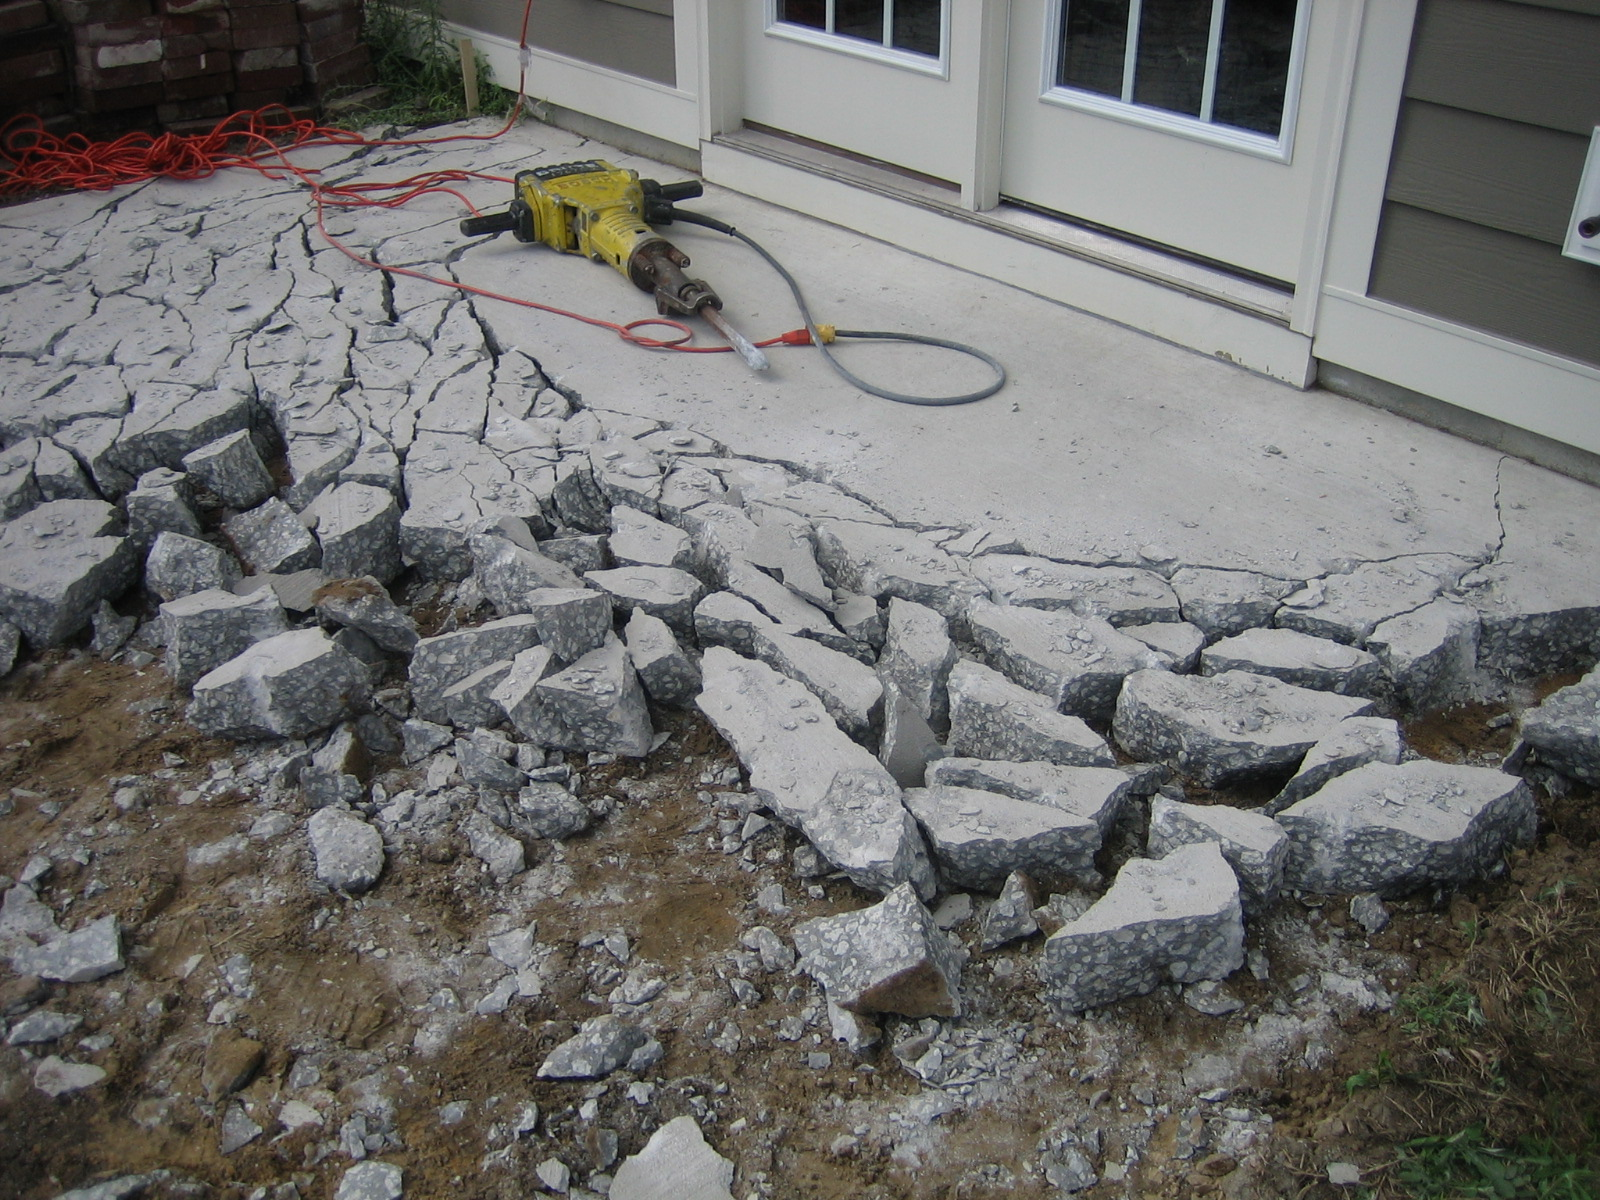 Charming Removing The Concrete Was A Loud, Grueling Process.